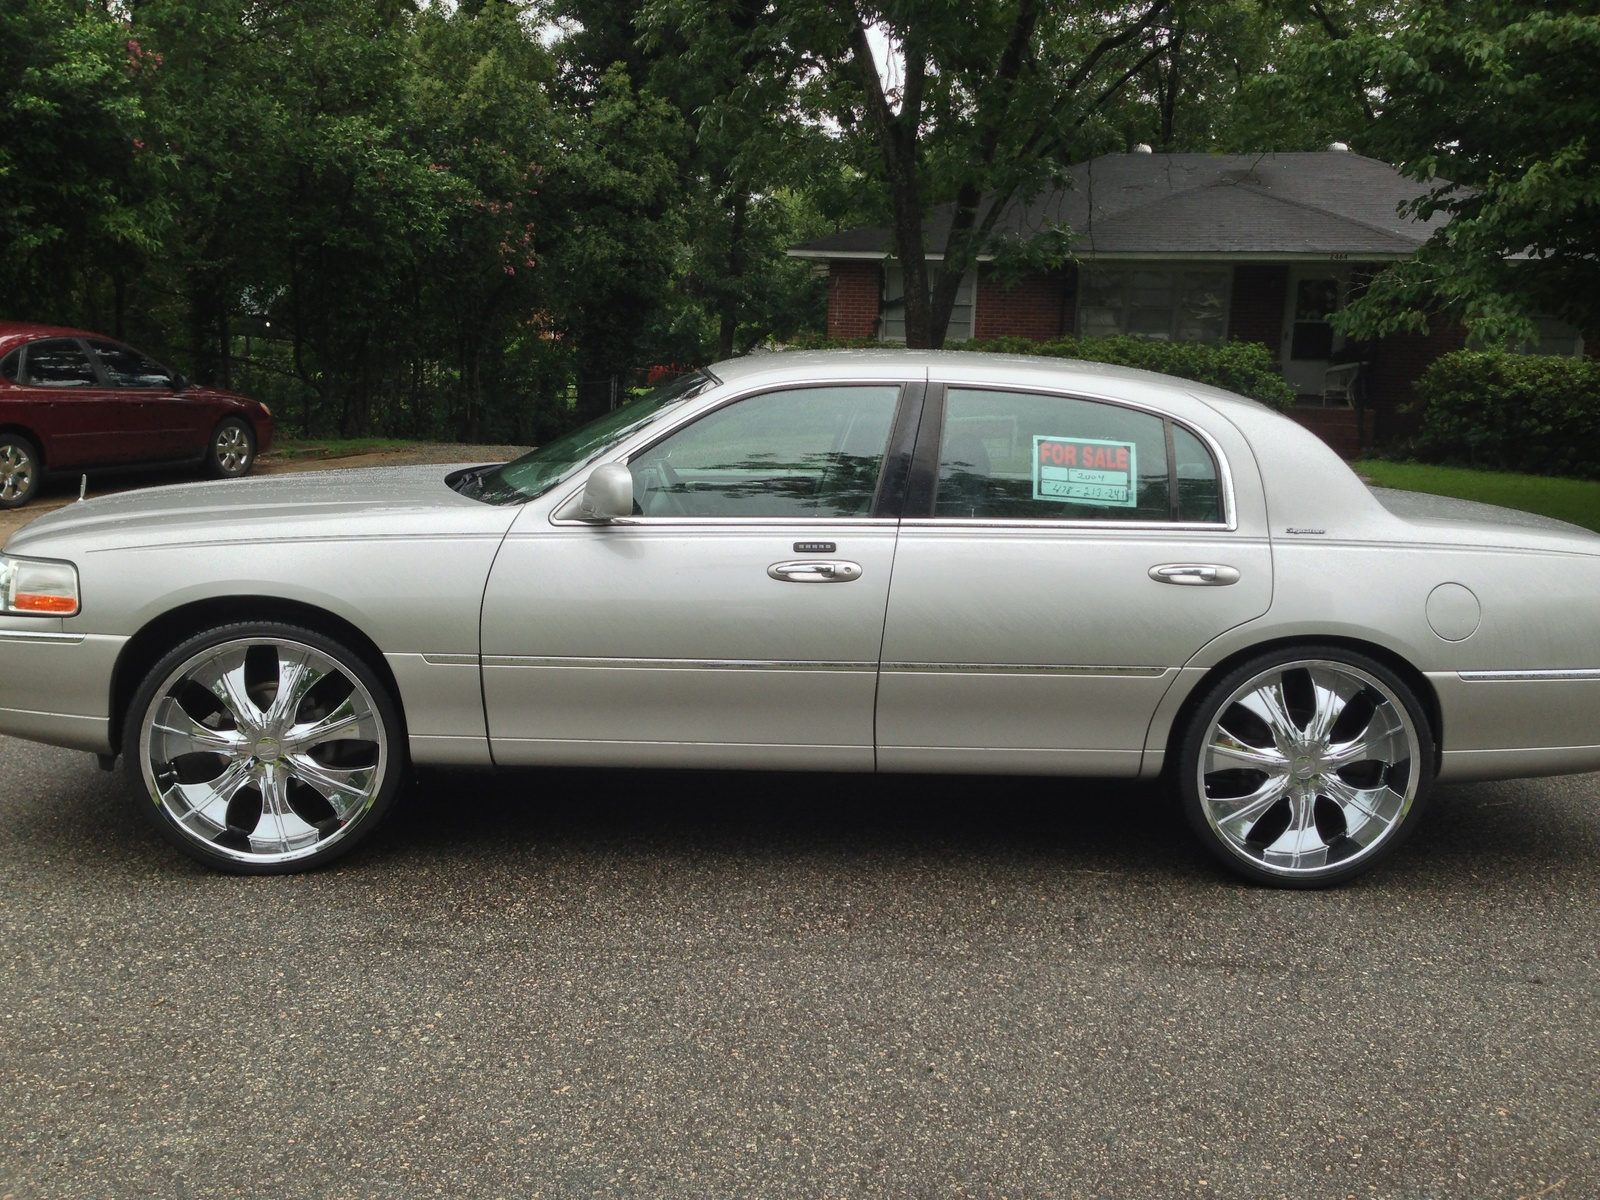 2004 lincoln town car pictures cargurus